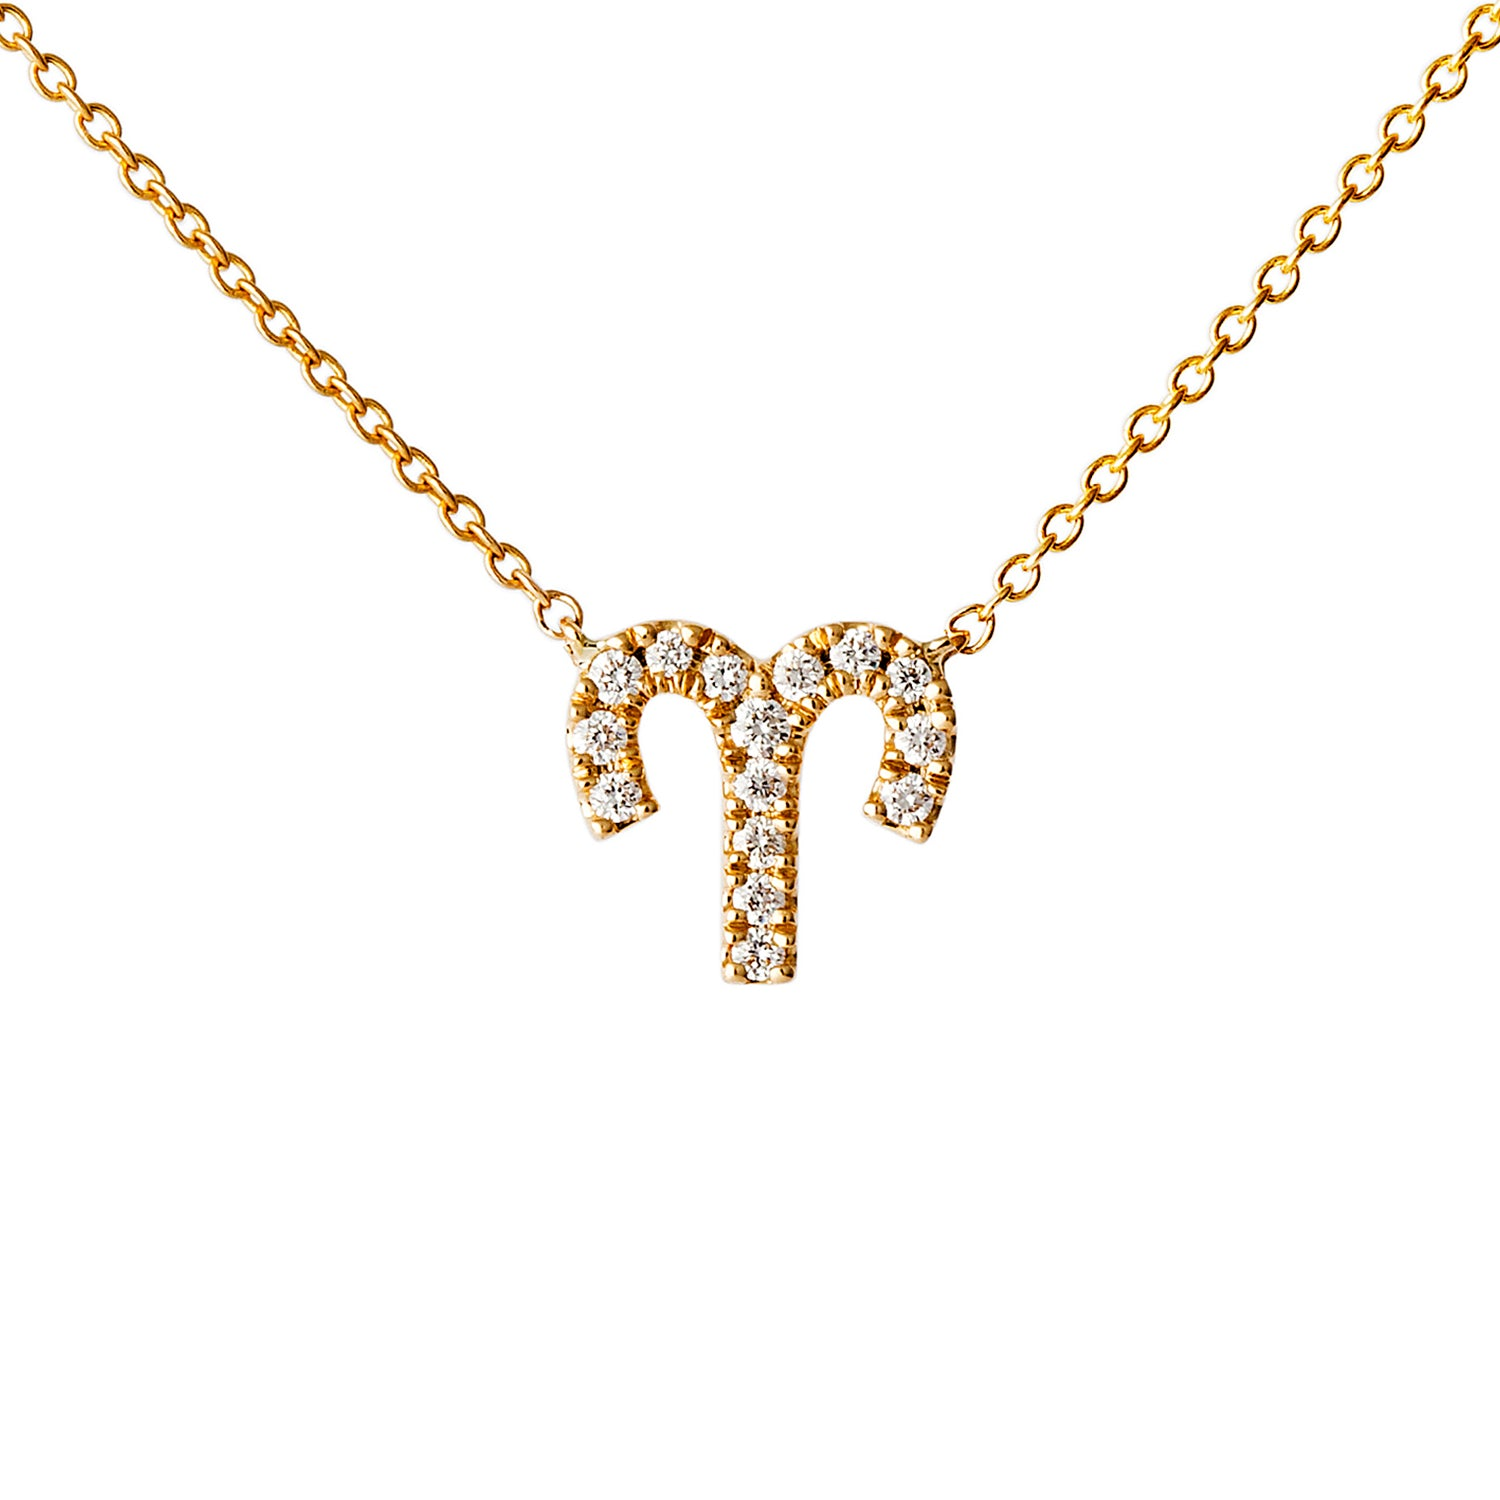 Petit Aries Necklace - Engelbert - Necklaces | Broken English Jewelry